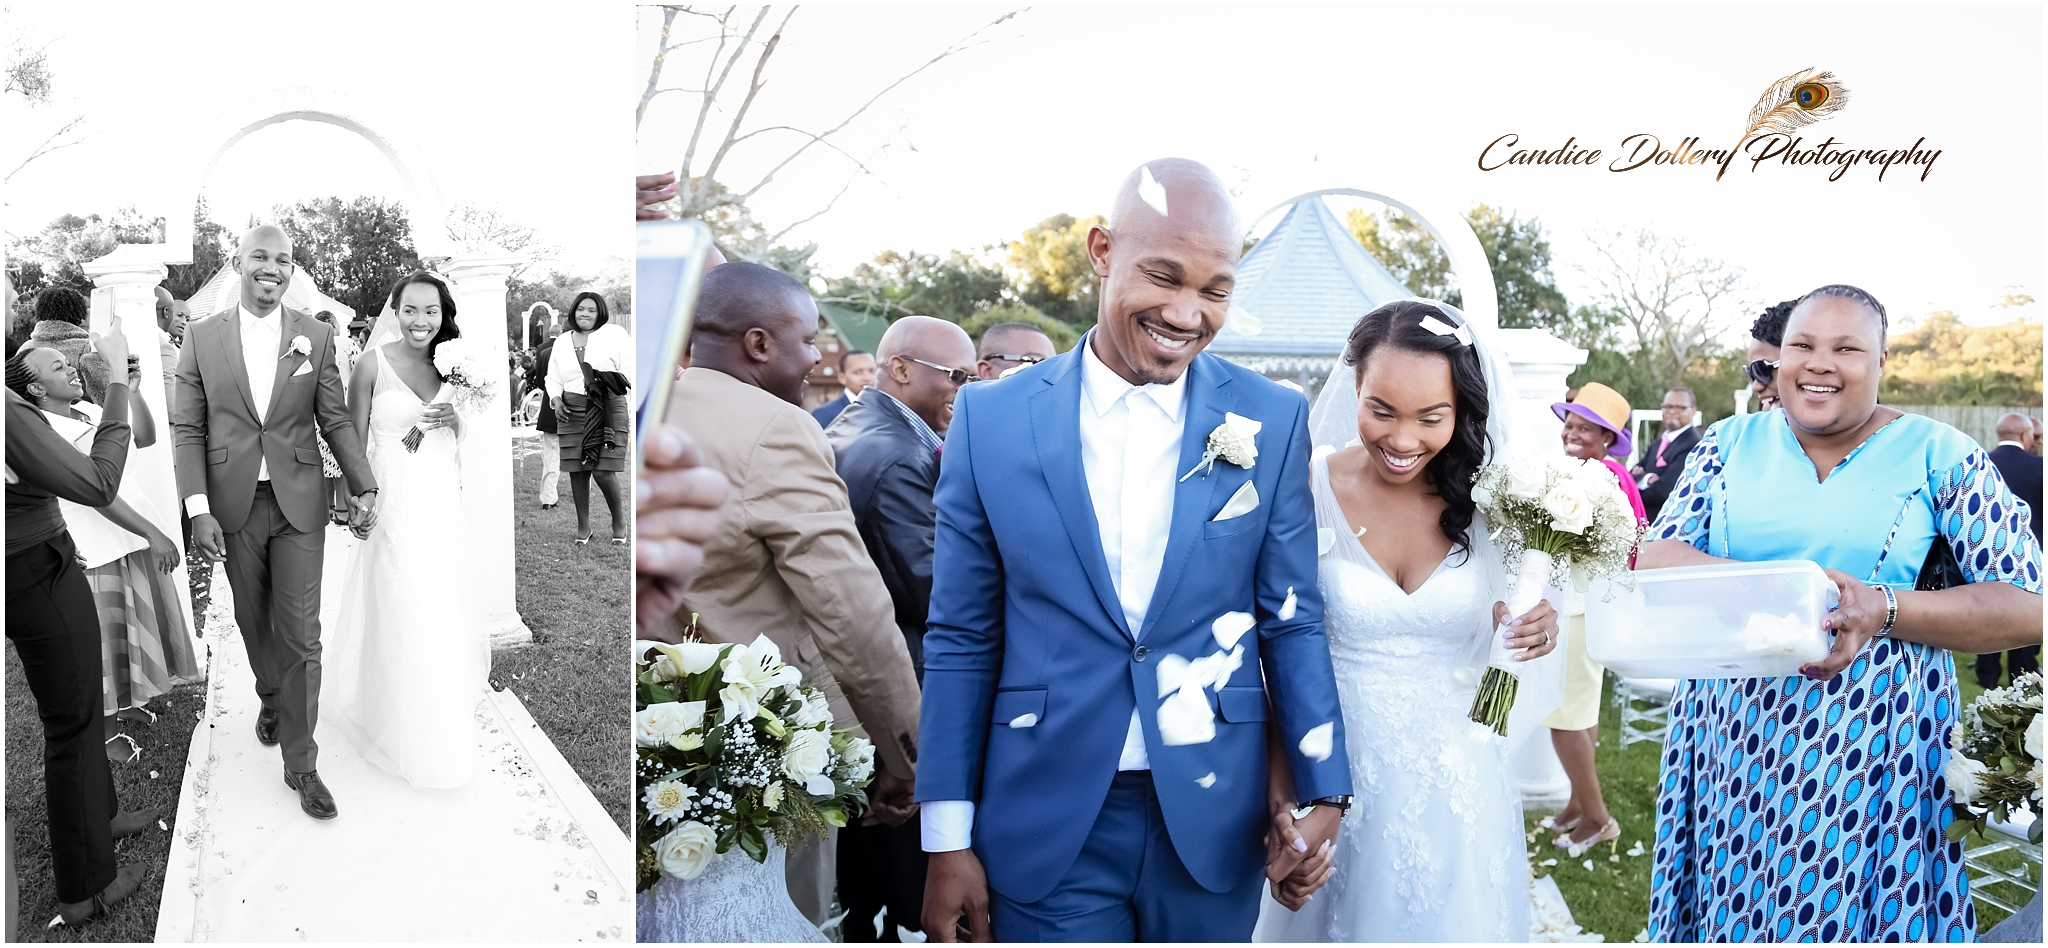 lelethu-kgotsos-wedding-candice-dollery-photography_1657